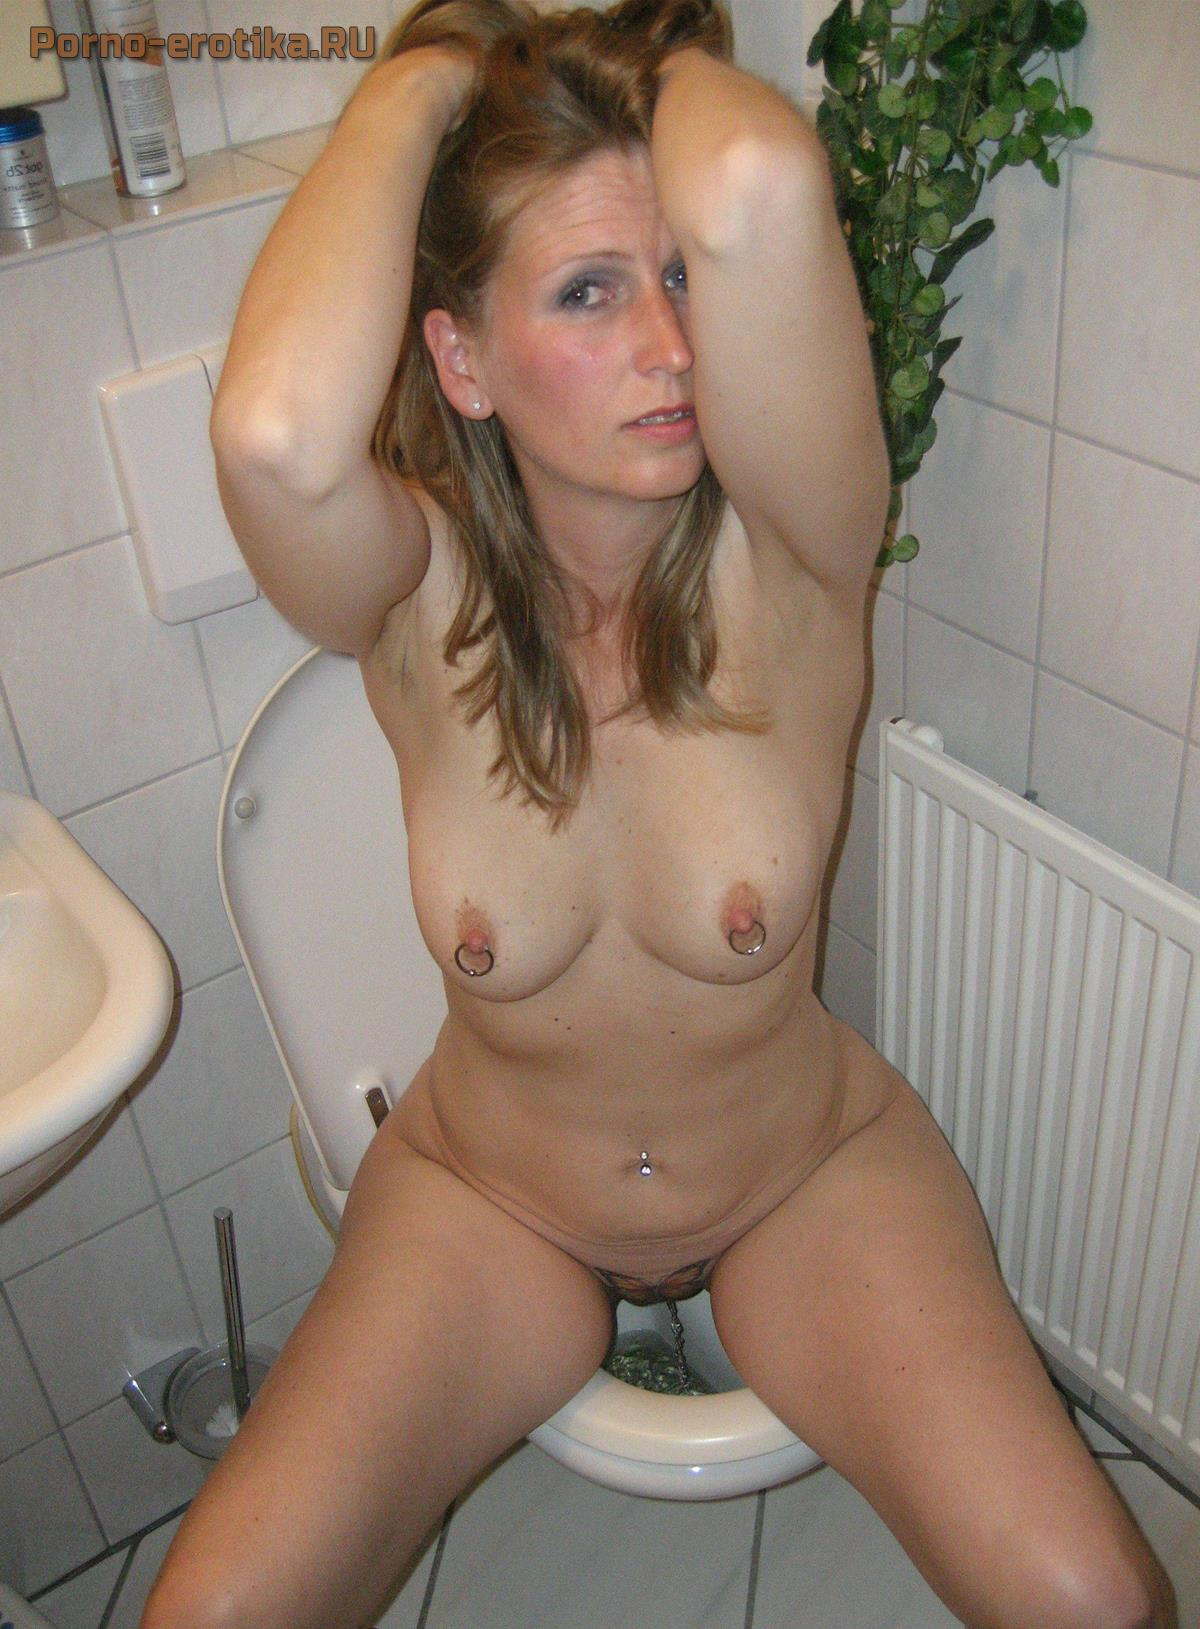 Purity for naked russian women on the toilet pussy